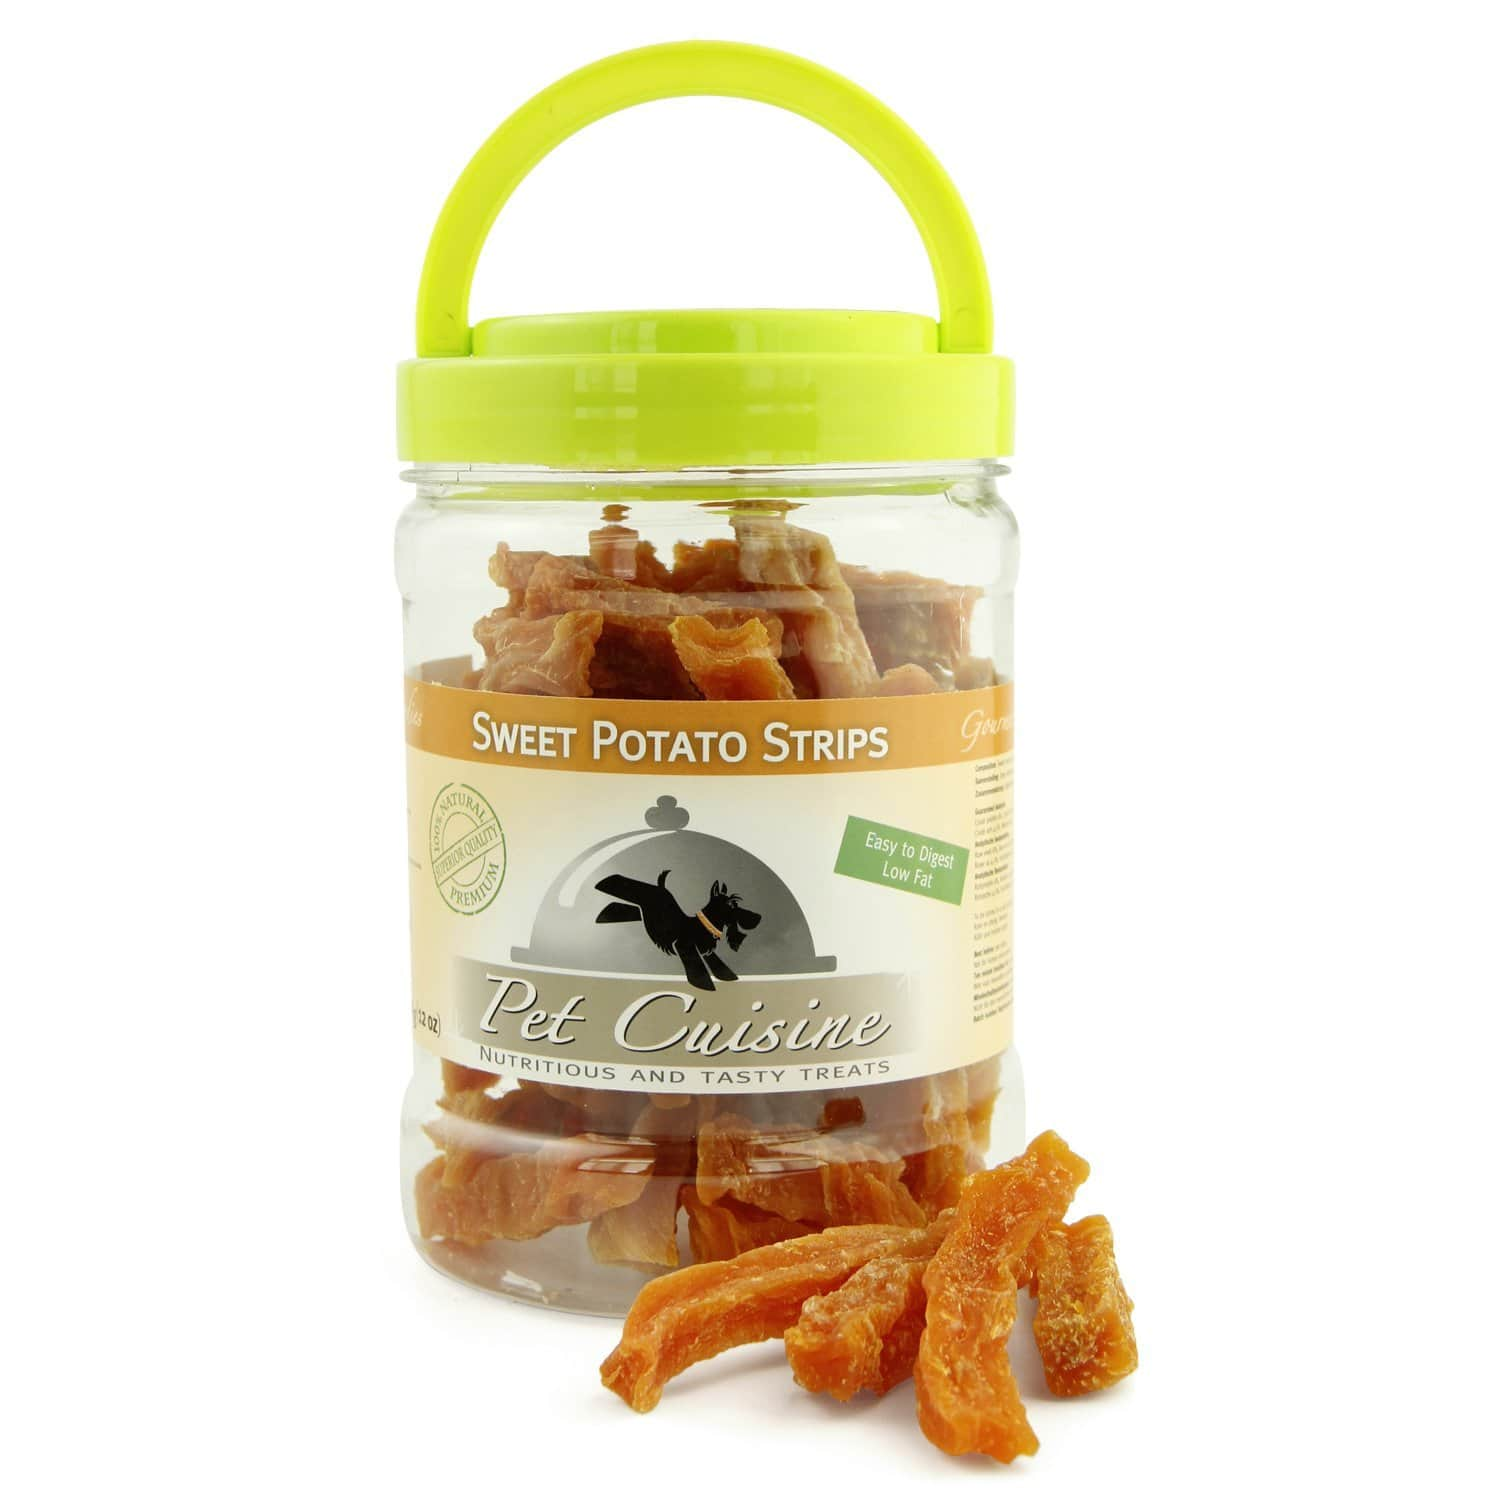 Pet Cuisine - 50% Off Dog Treats Training Snacks, Sweet Potato Strips (340g) $4.45